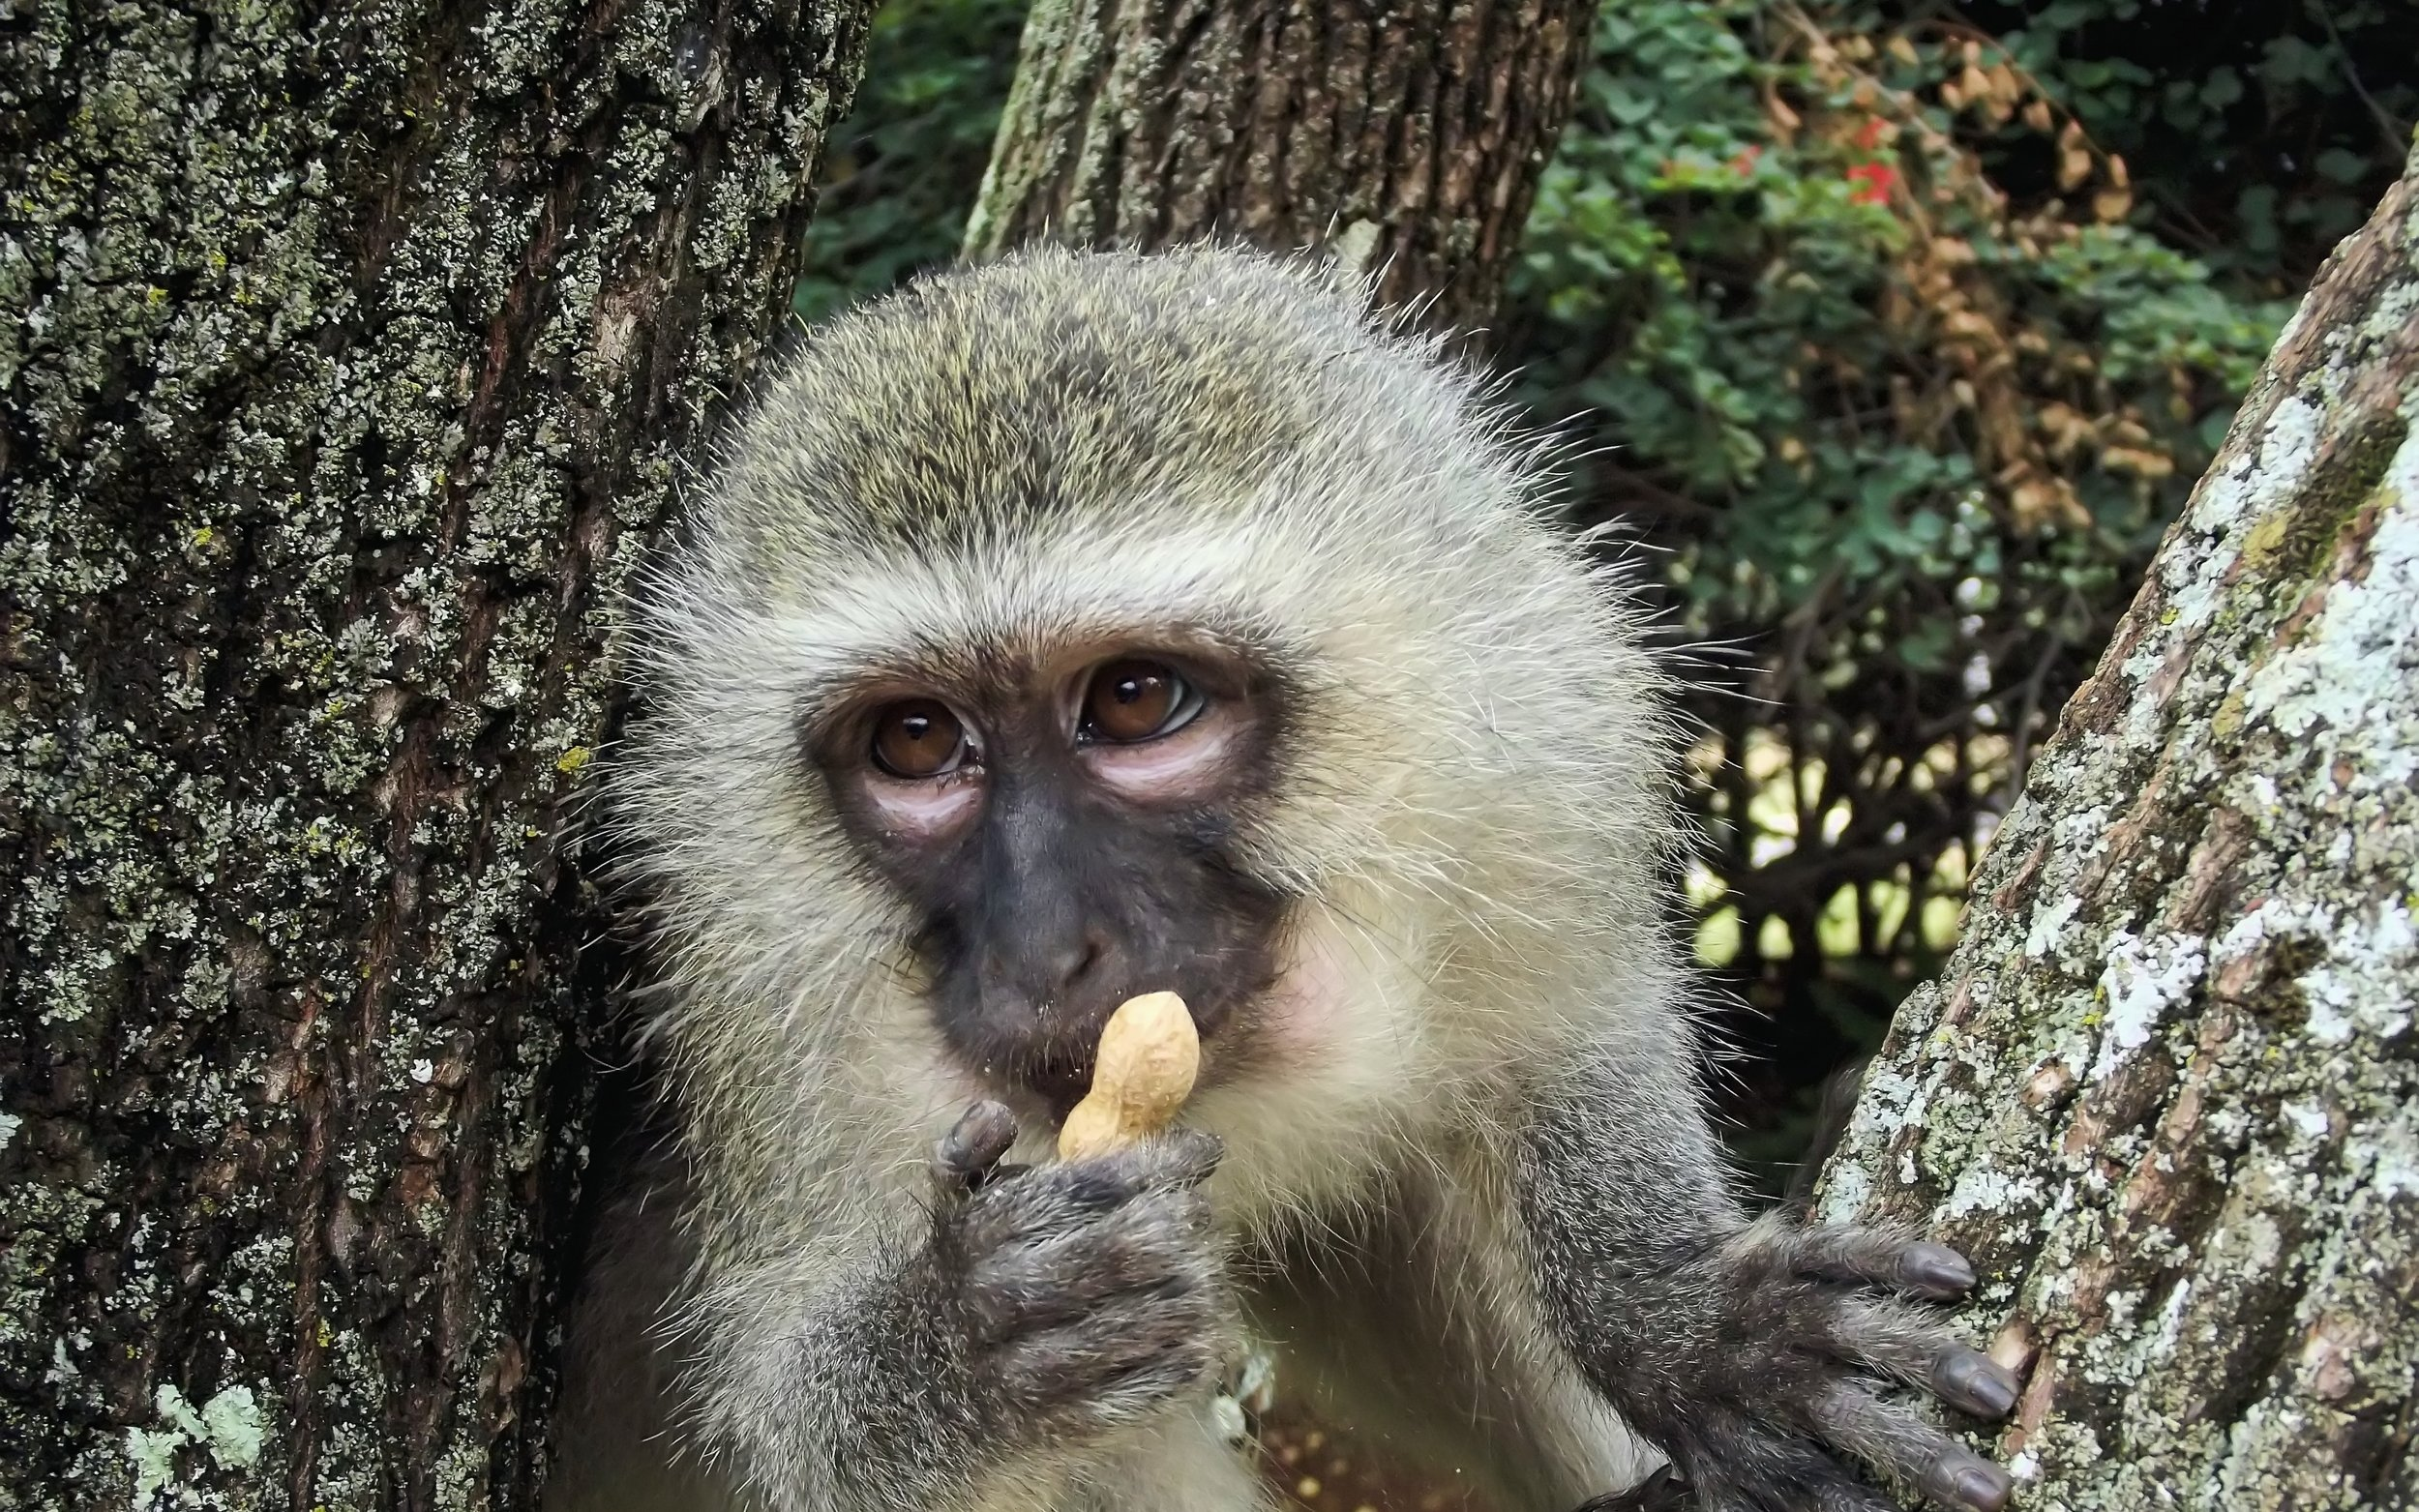 Spotted monkey monkey nut food x Wallpapers Craft